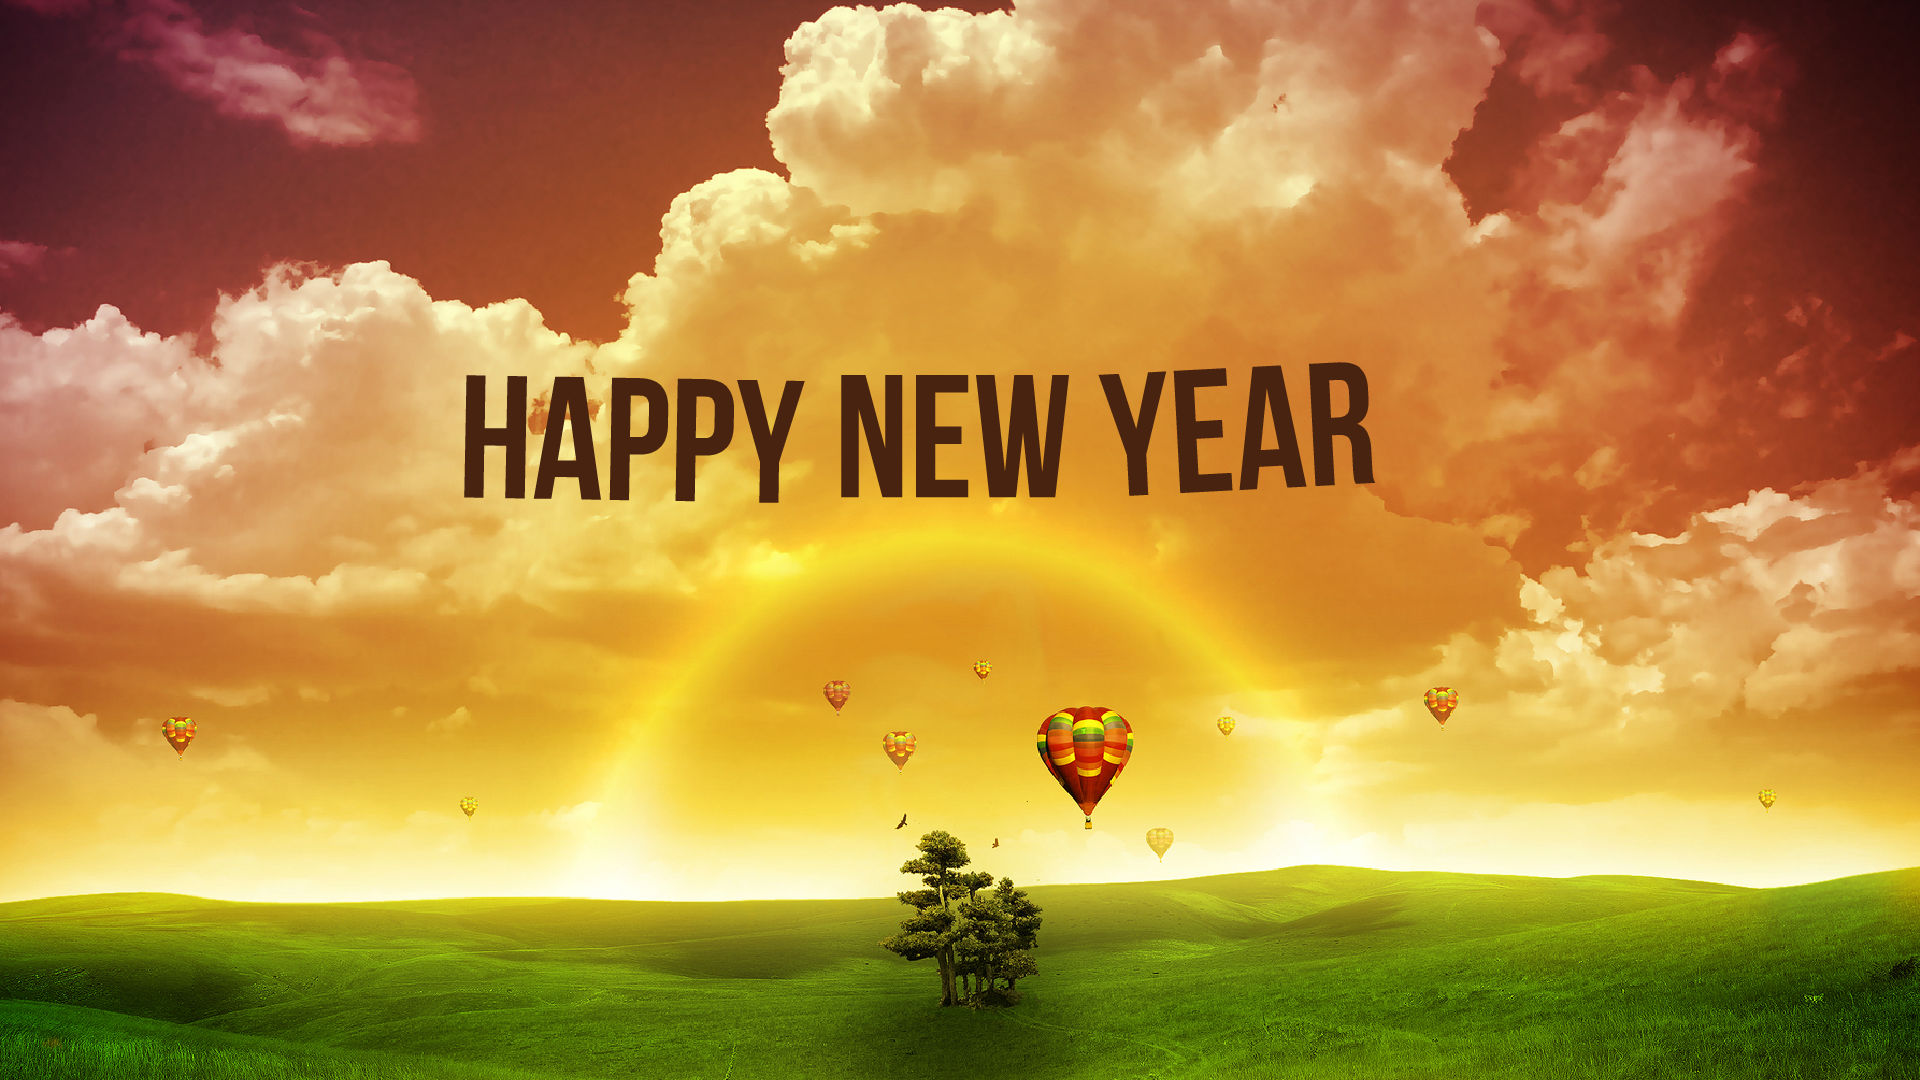 happy new year  № 1415742 бесплатно